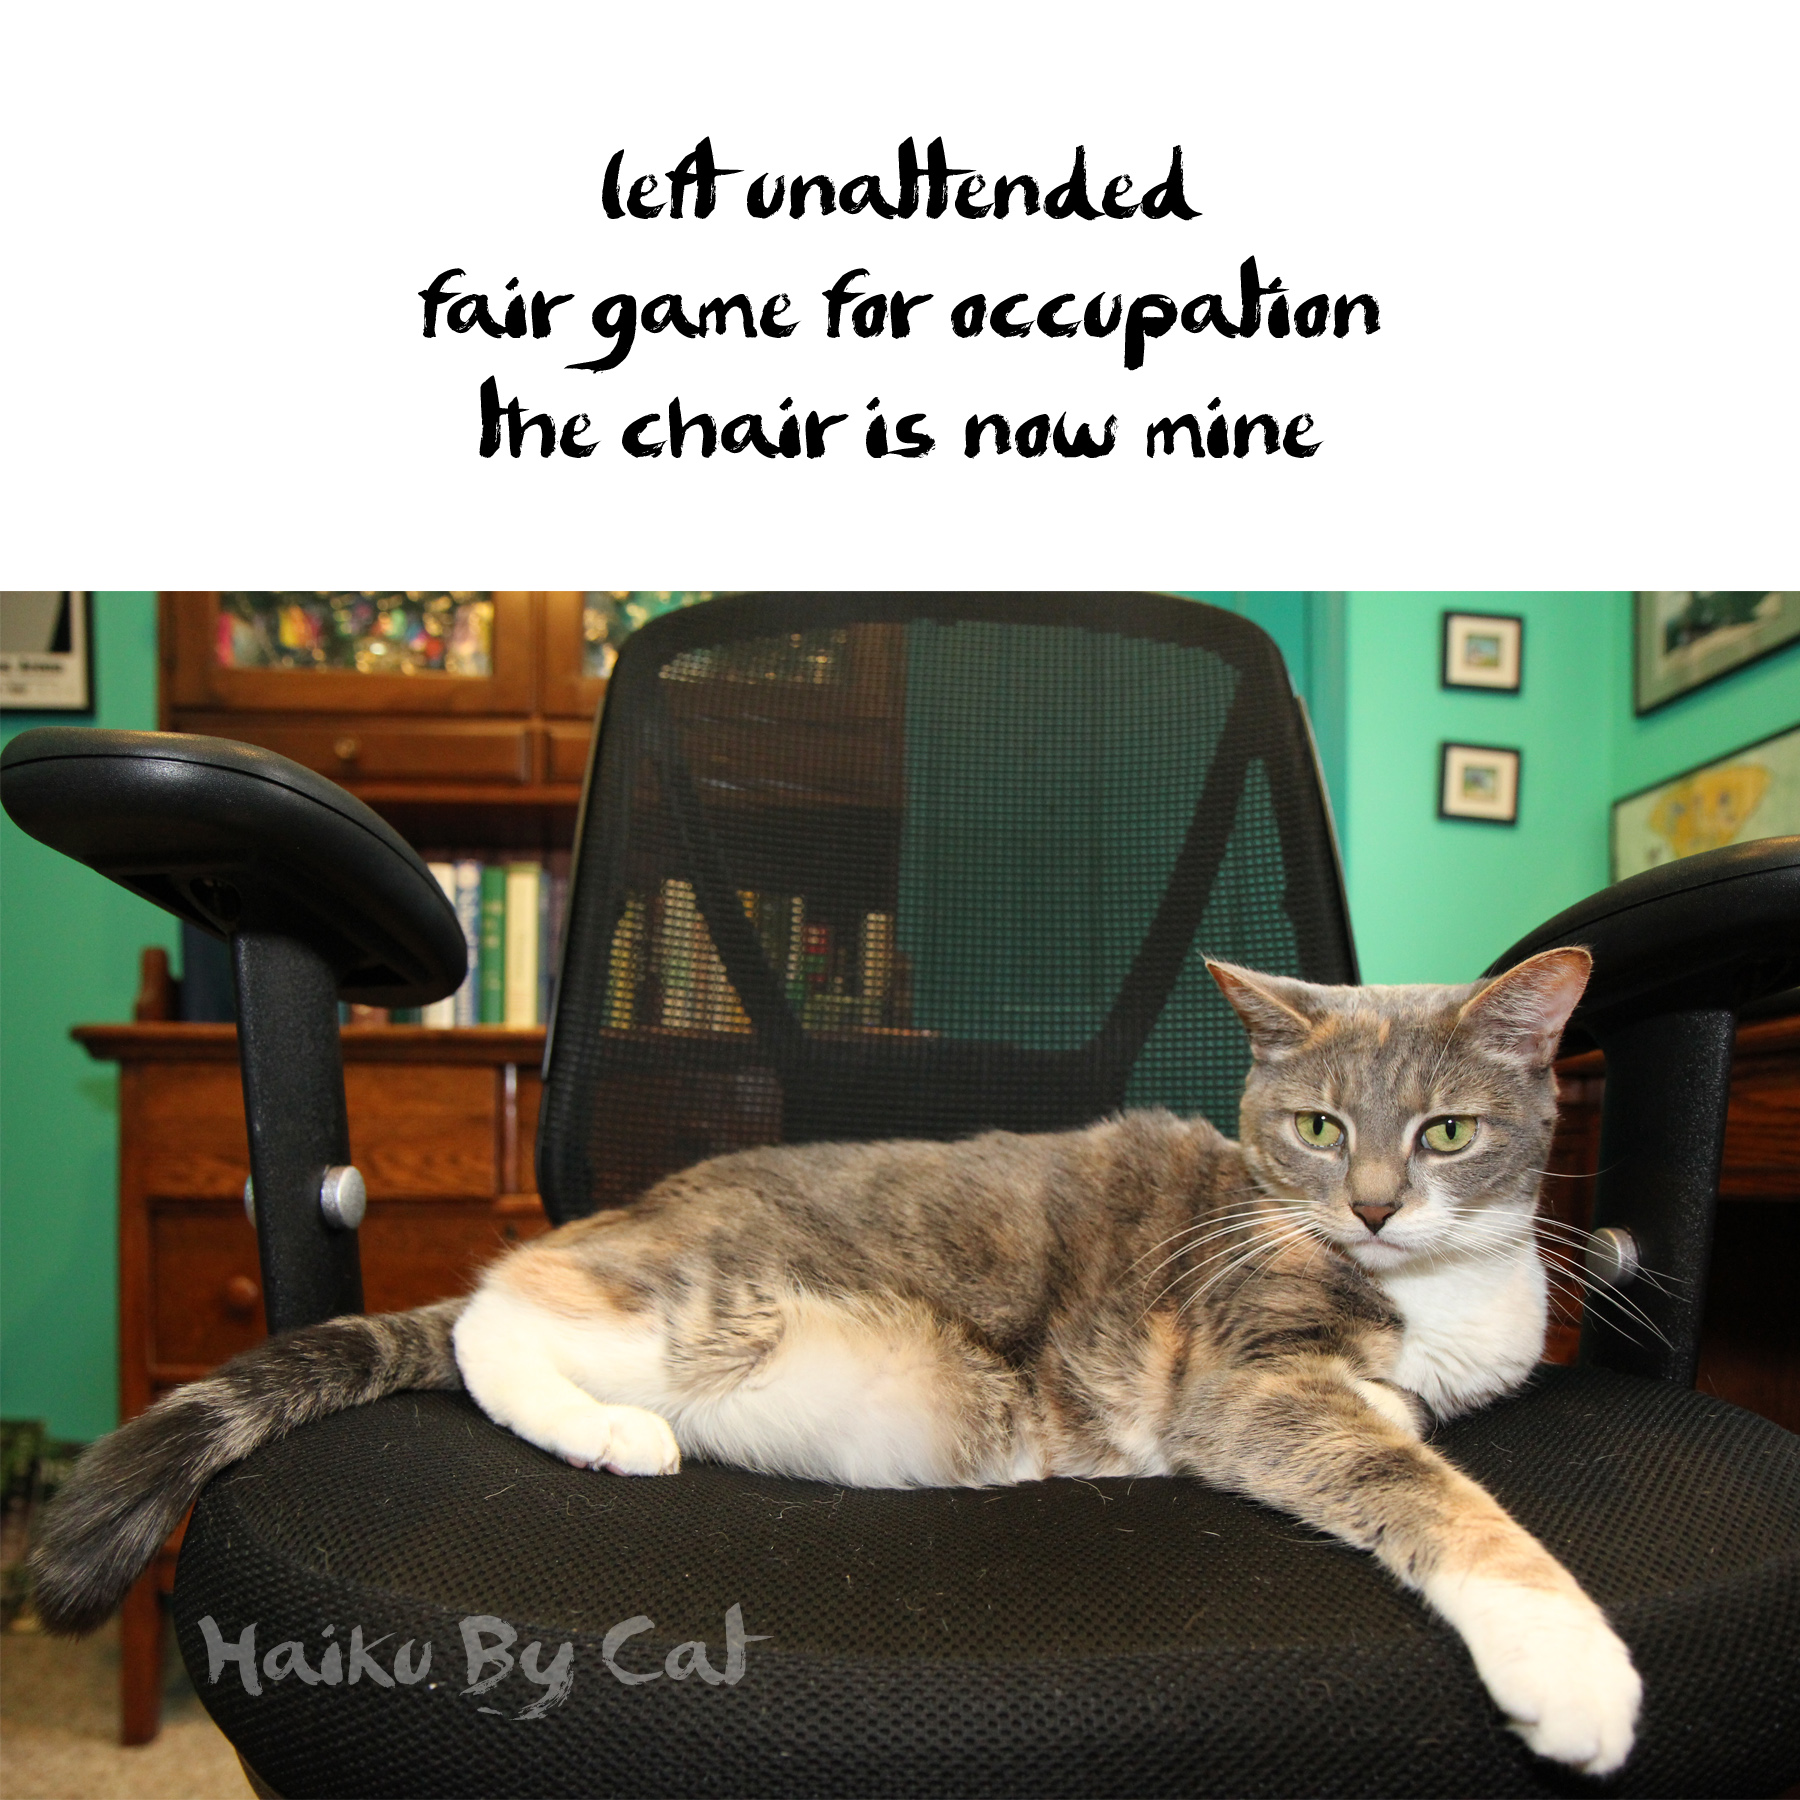 Haiku by cat: left unattended / fair game for occupation / this chair is now mine